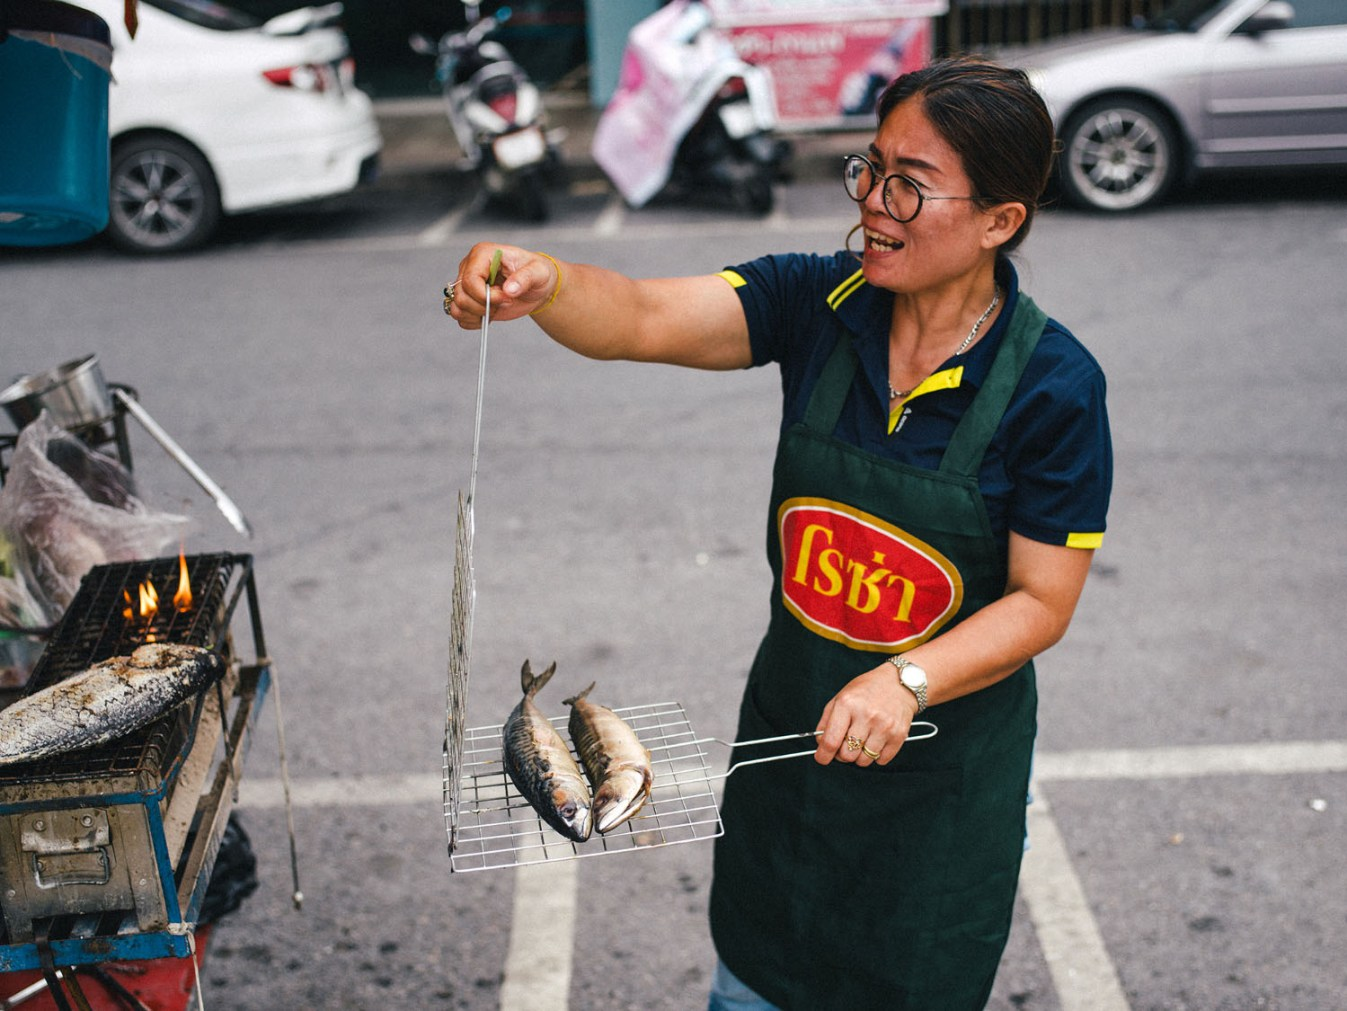 woman grilling fish on the street - https://digital-photography-school.com/top-street-travel-photography-tips-2017/